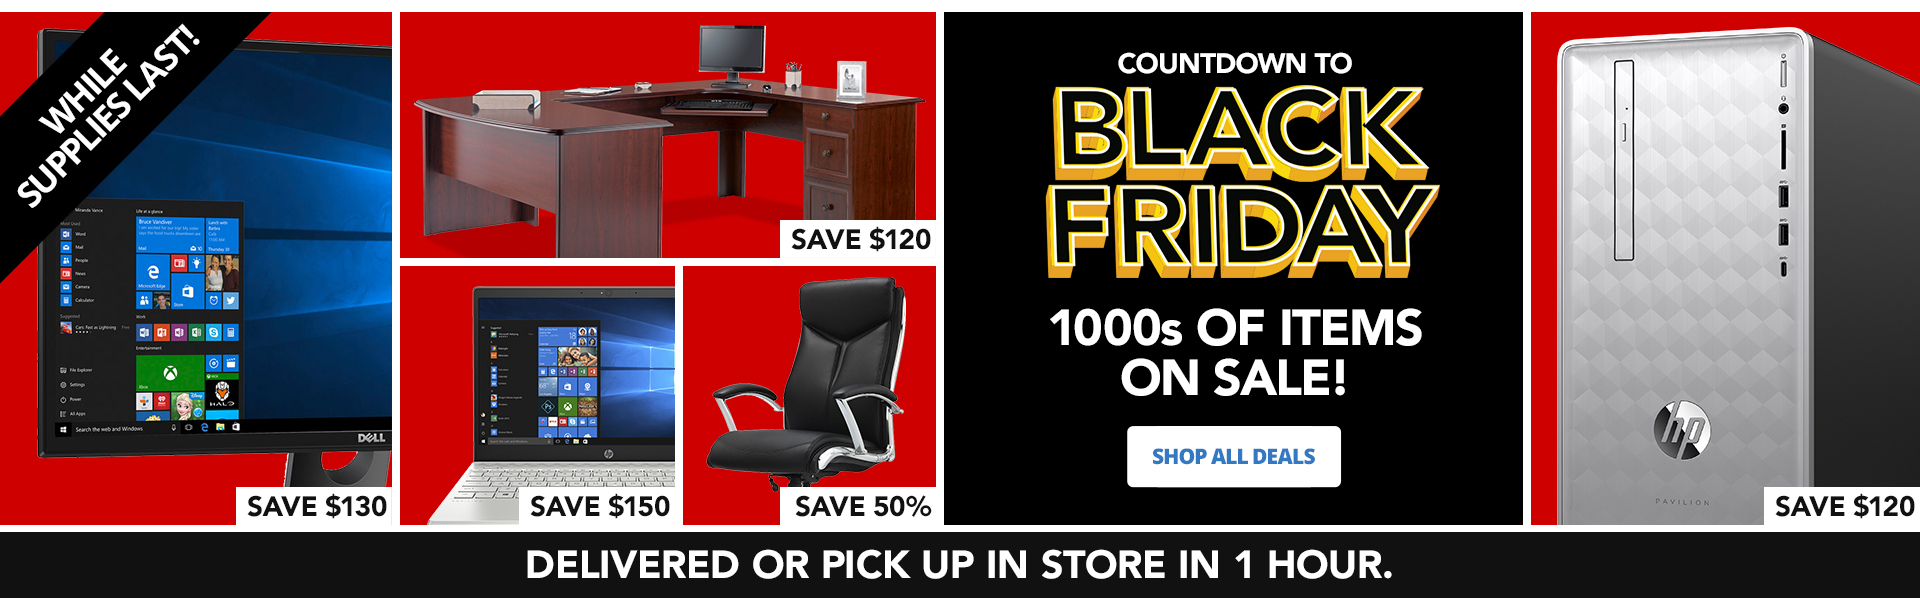 Countdown To Black Friday 100s Of Items On Sale-to-blackfriday